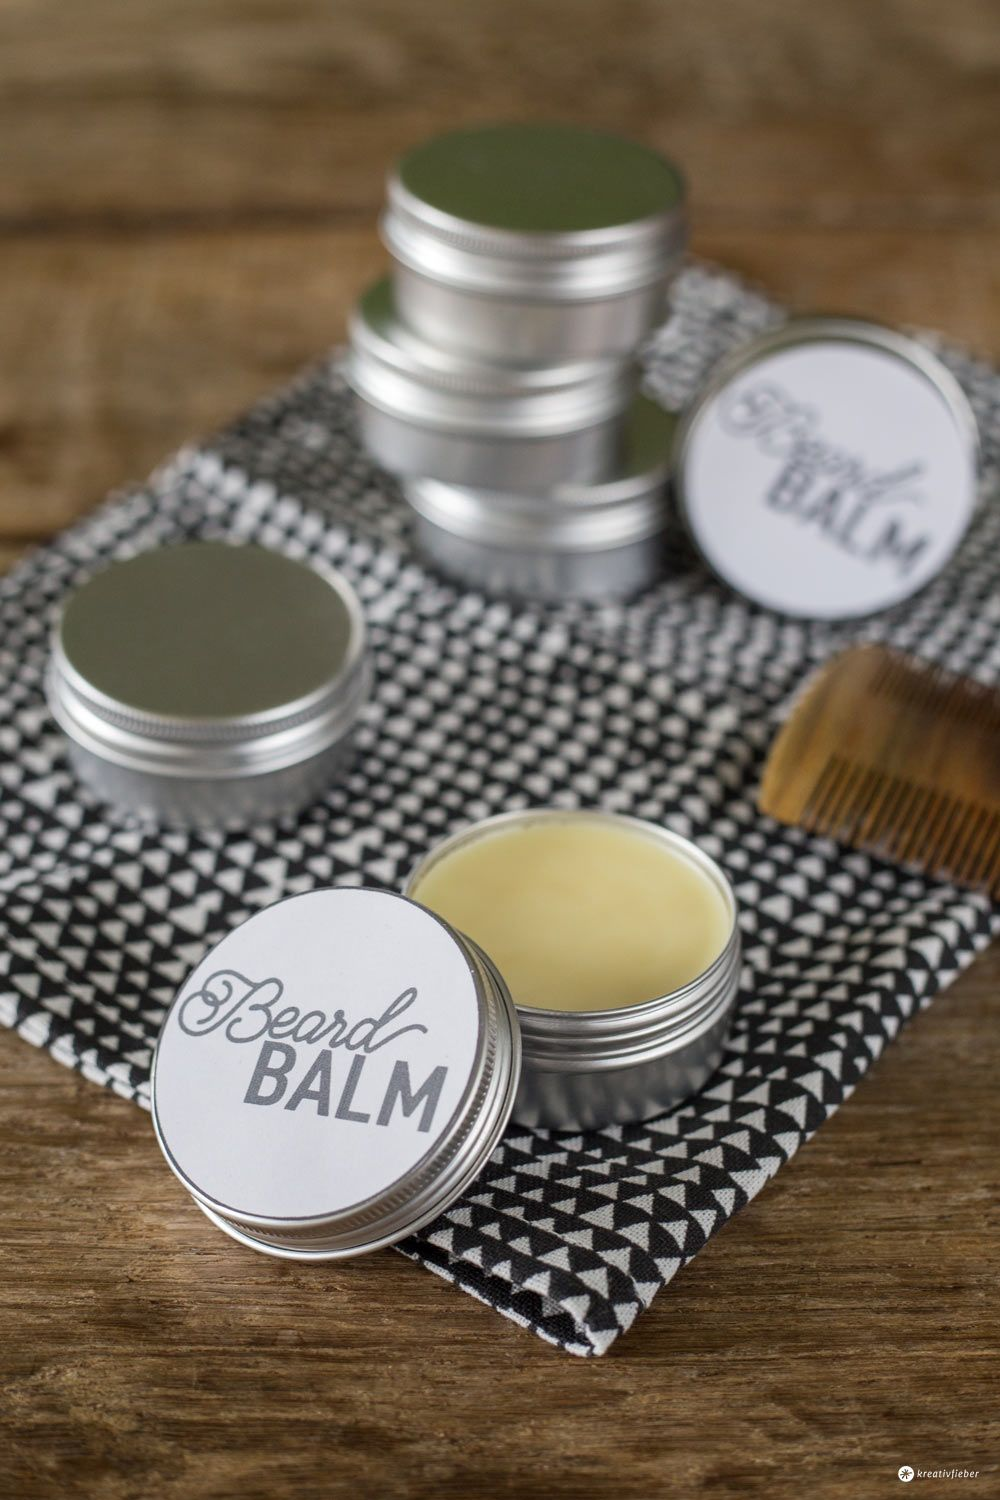 diy beard balm bart balsam selbermachen liebliches pinterest. Black Bedroom Furniture Sets. Home Design Ideas